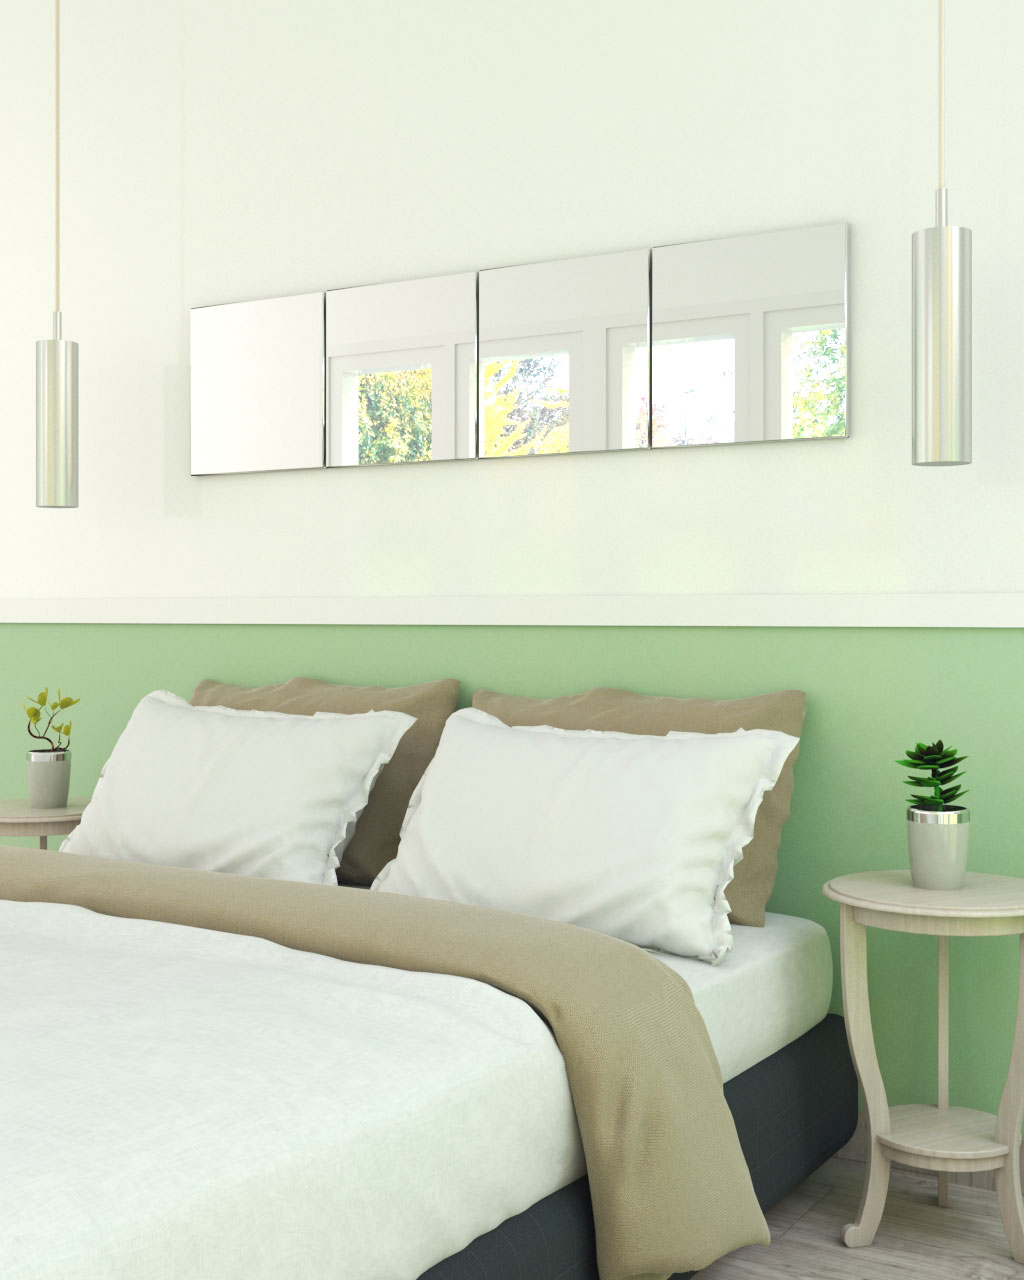 Simple rectangular mirror style for bedroom